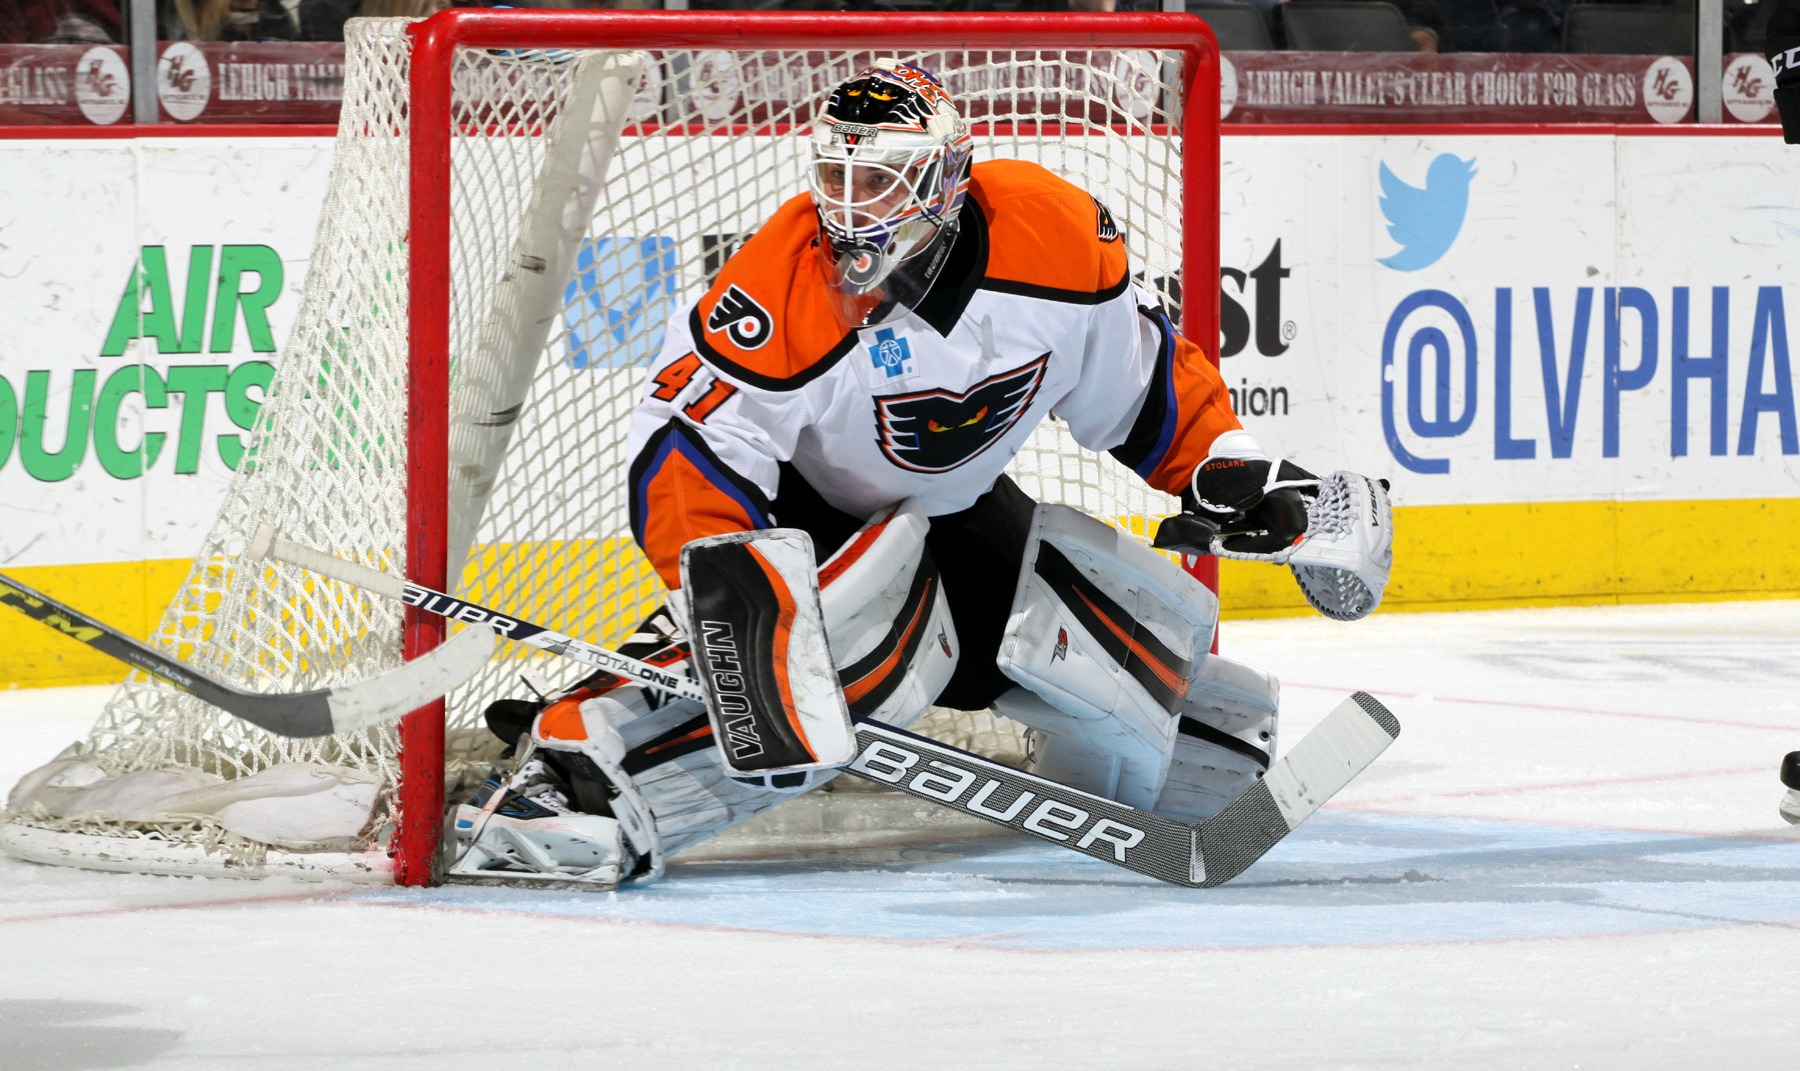 Phantoms Individual Game Tickets for 2016-17 Season On Sale Now!